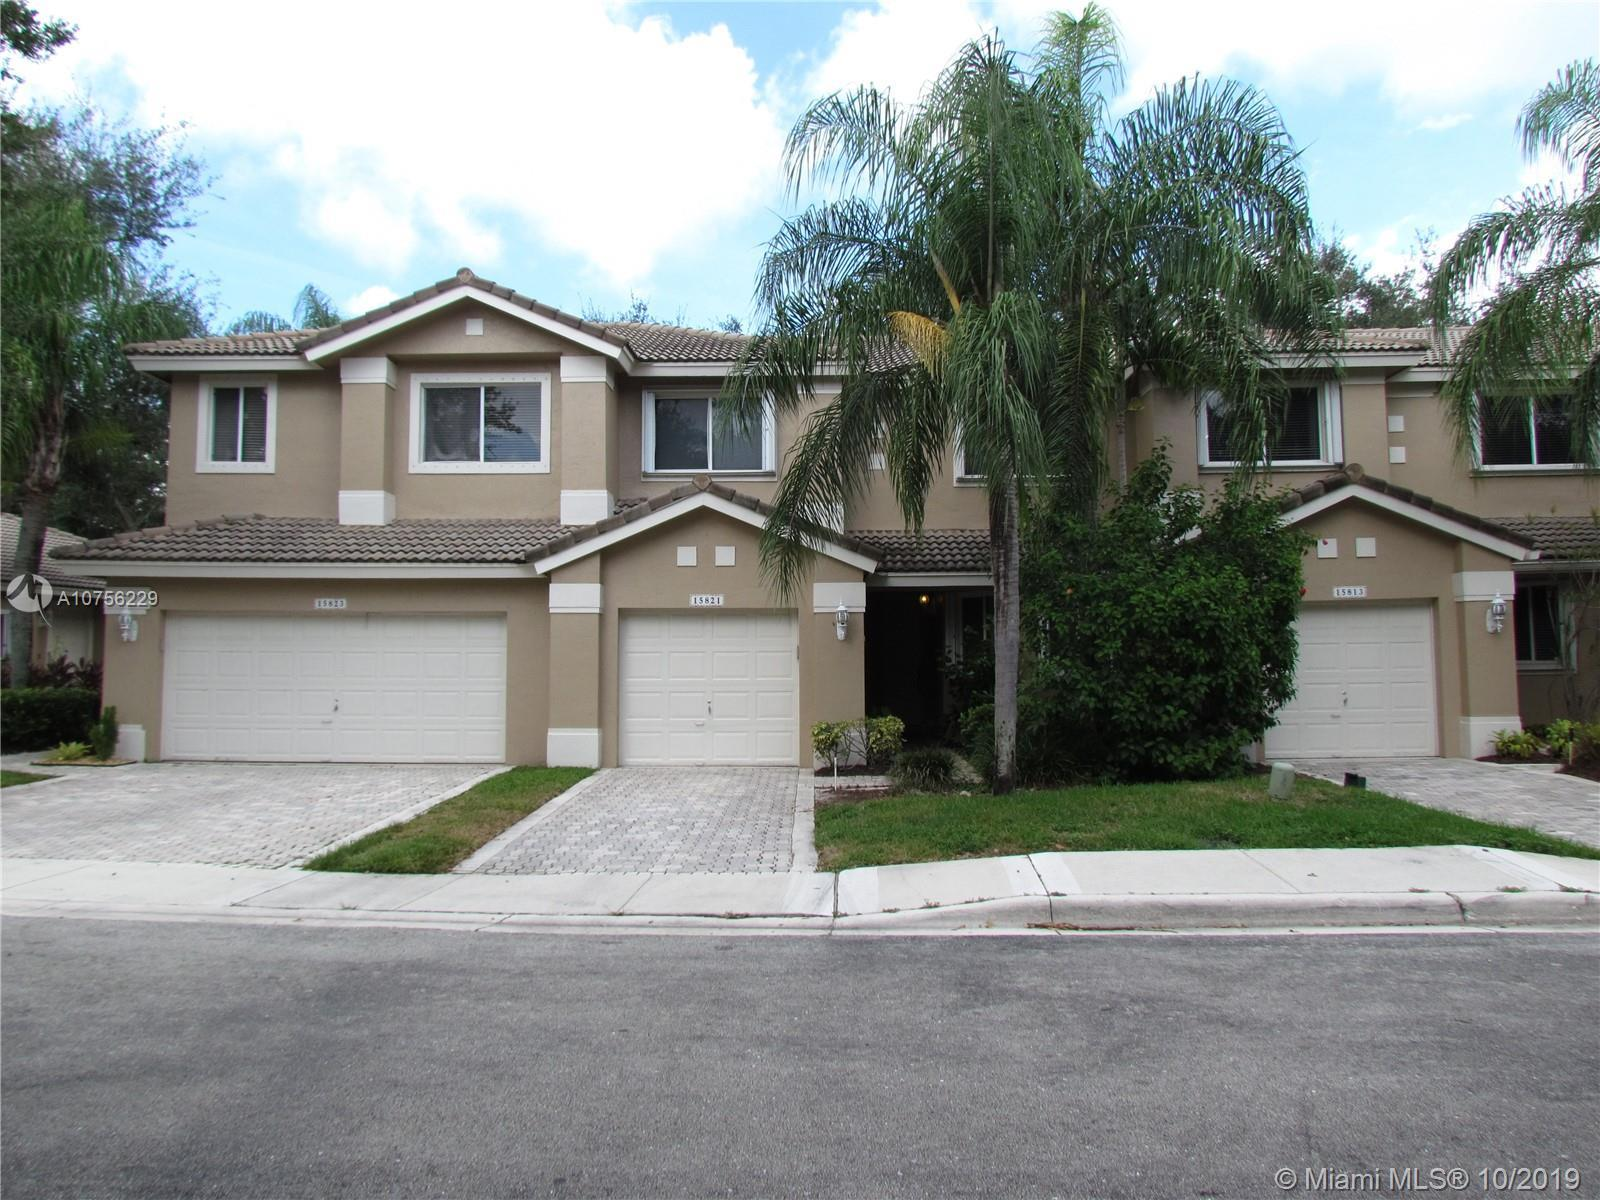 BEST LOCATION in Pembroke Pines. Move fast on this beautiful well maintained 3 bedrooms 2.5 baths, 1